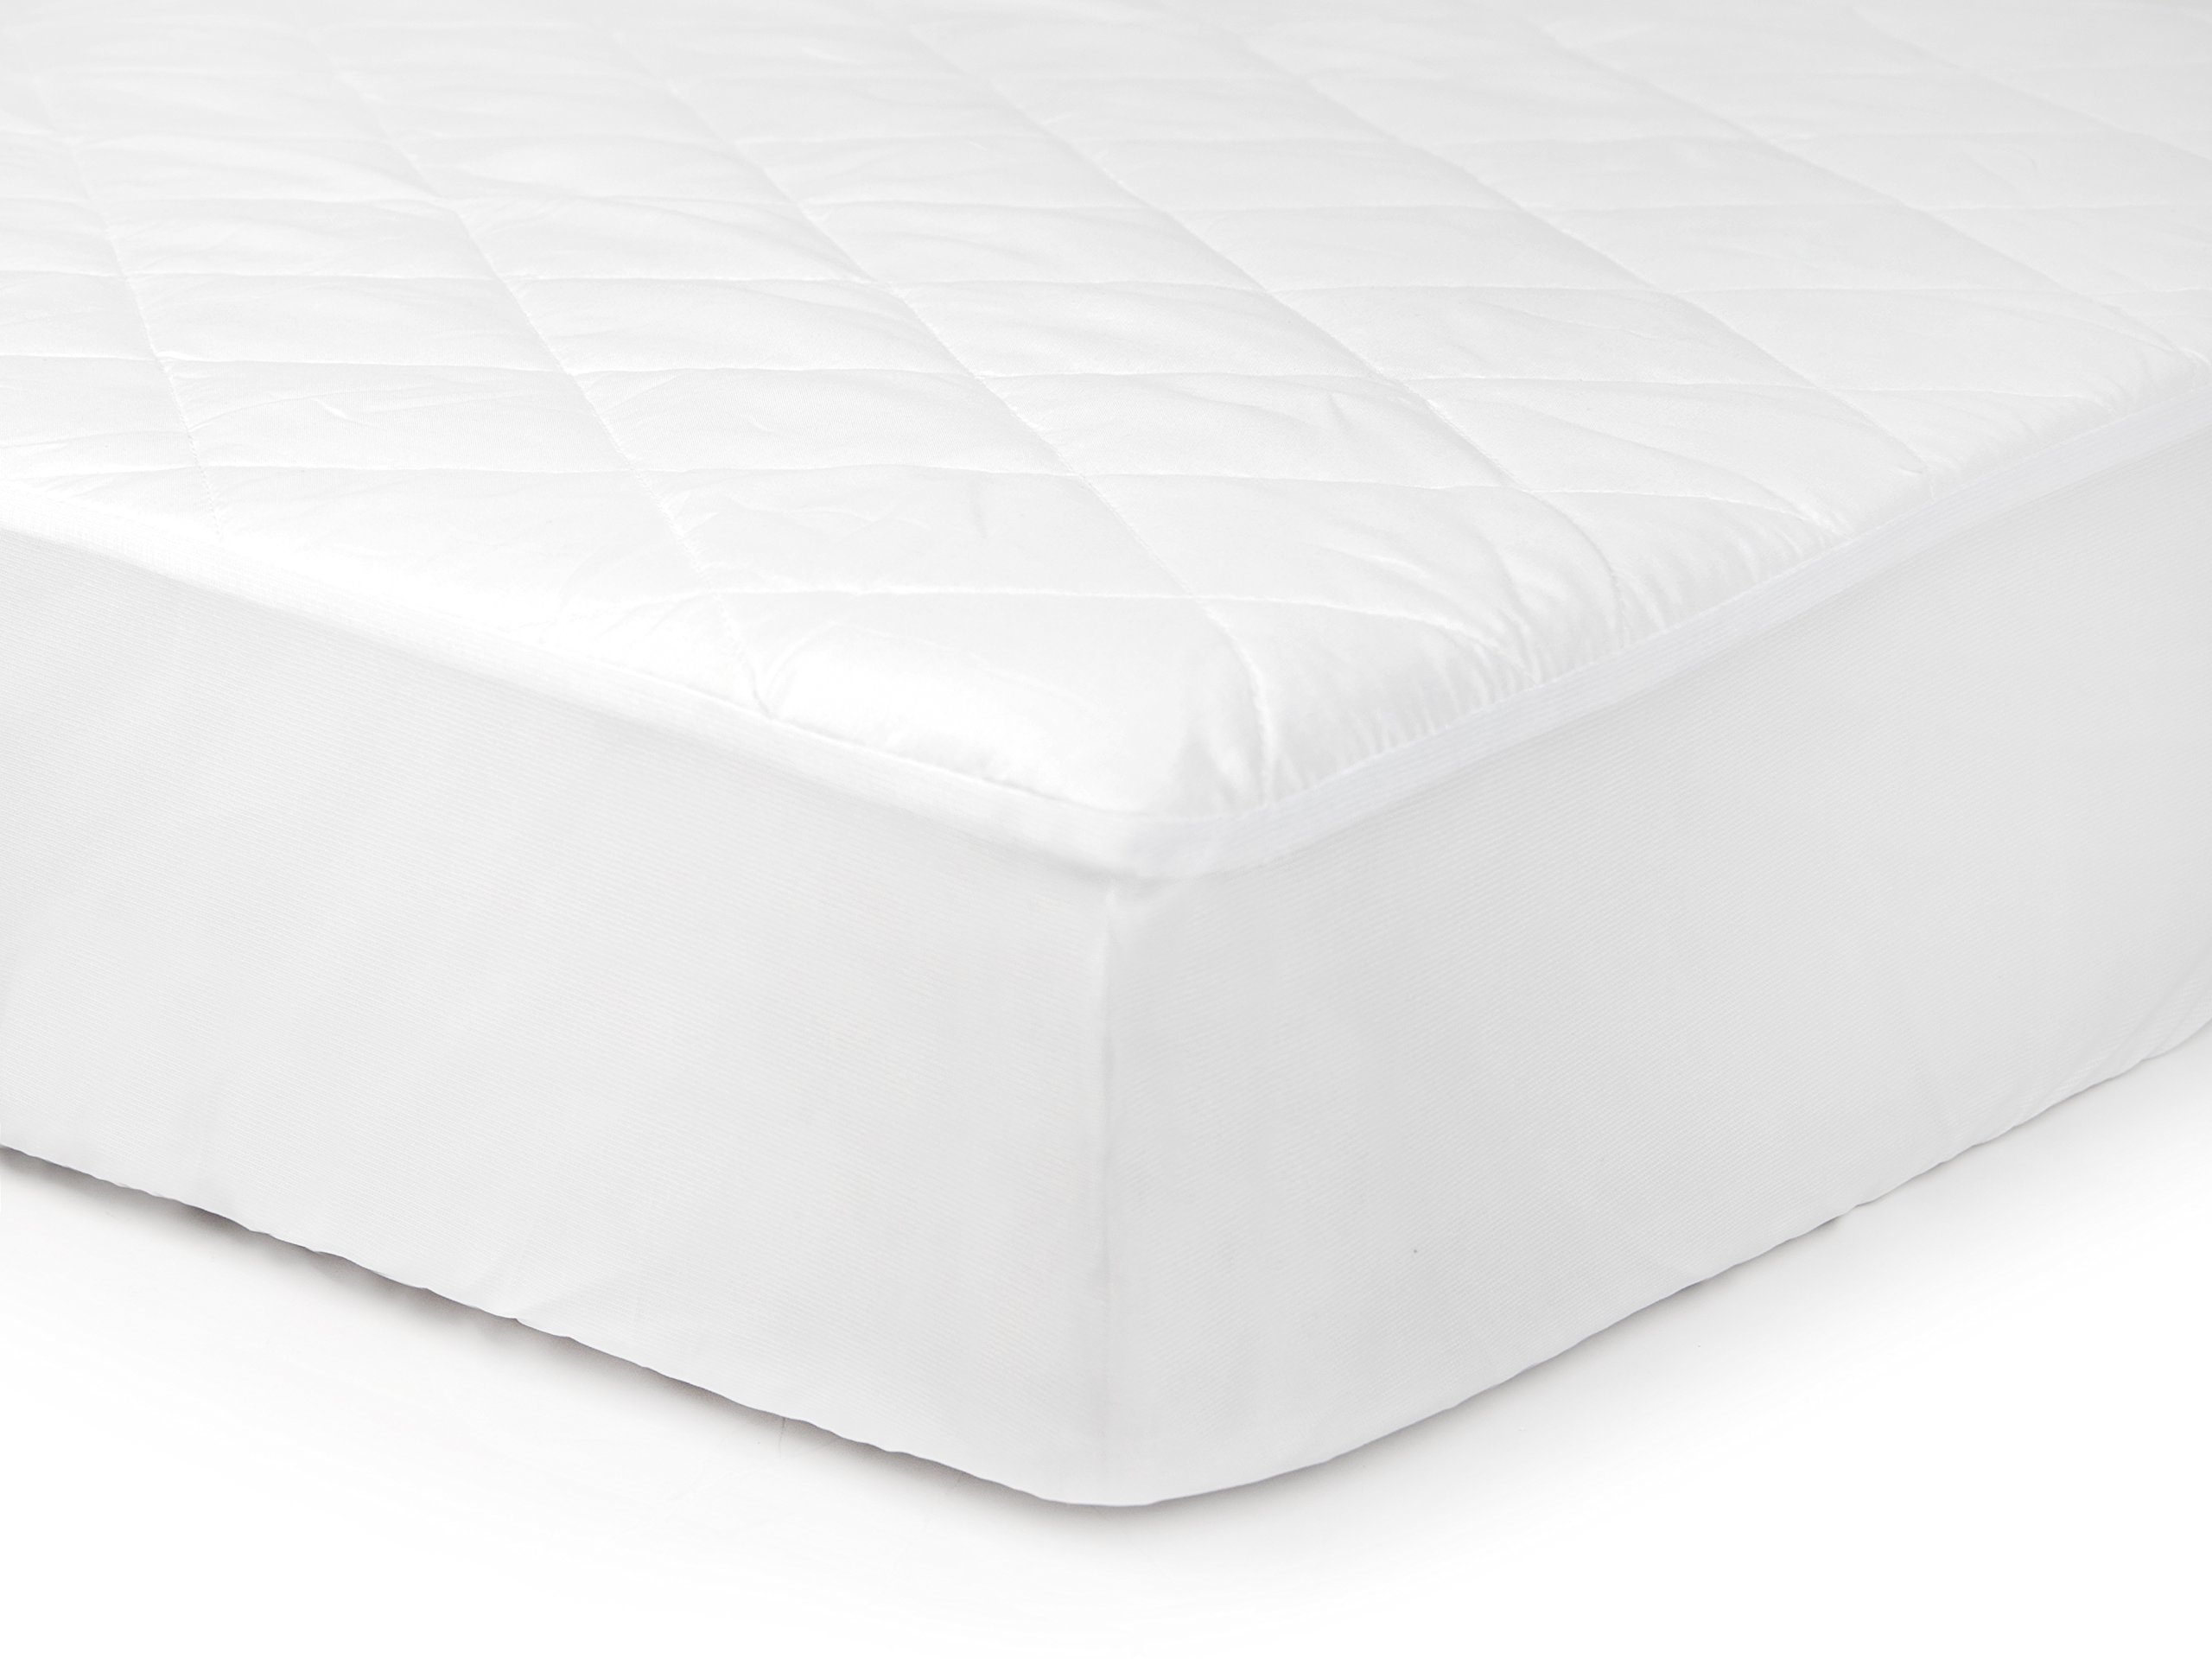 Tadpoles Waterproof Fitted Crib and Toddler Protective Mattress Pad Cover, White